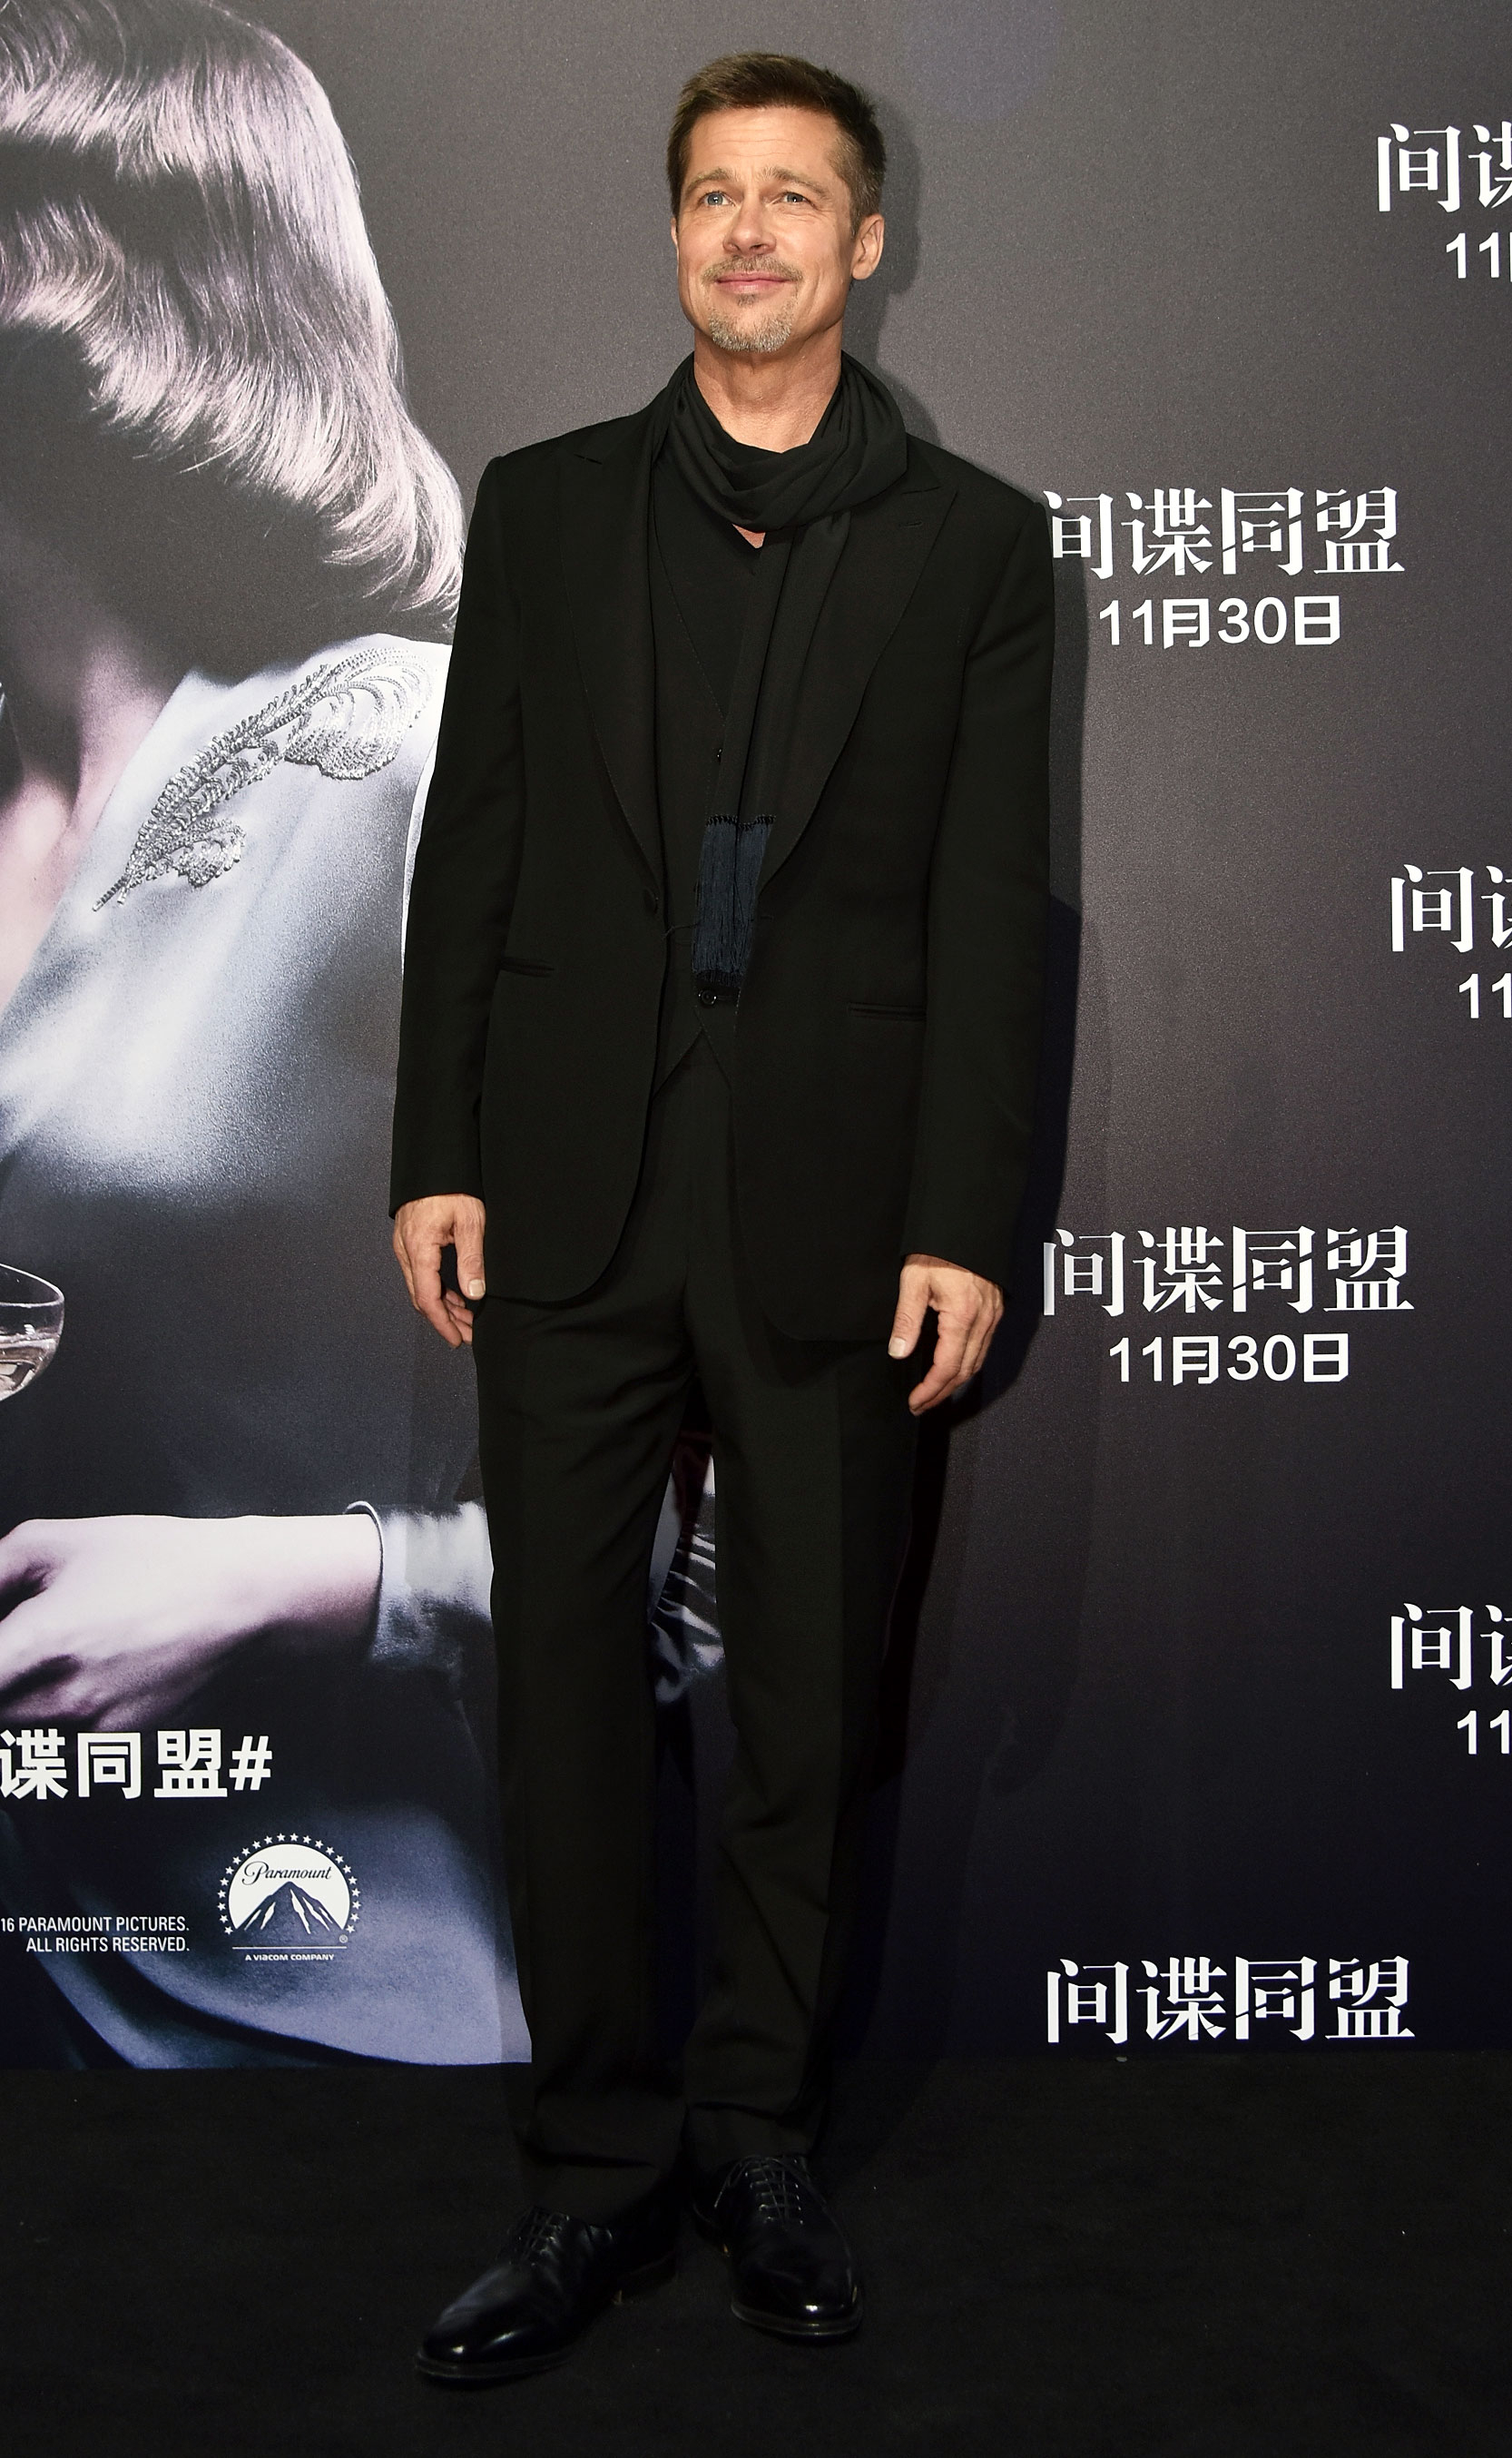 brad pitt - Pitt continued his press tour for Allied showing up for the premiere in Shanghai on November 14, 2016 in an all-black suit, with a black T-shirt underneath and a black scarf with navy tassels on the end.